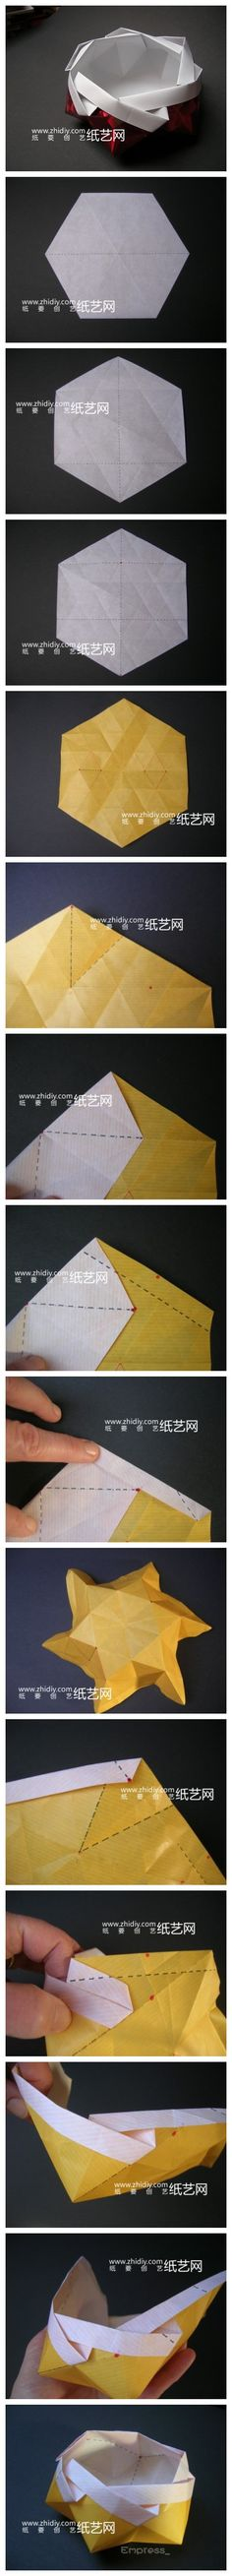 Origami dish. Photo diagrams.